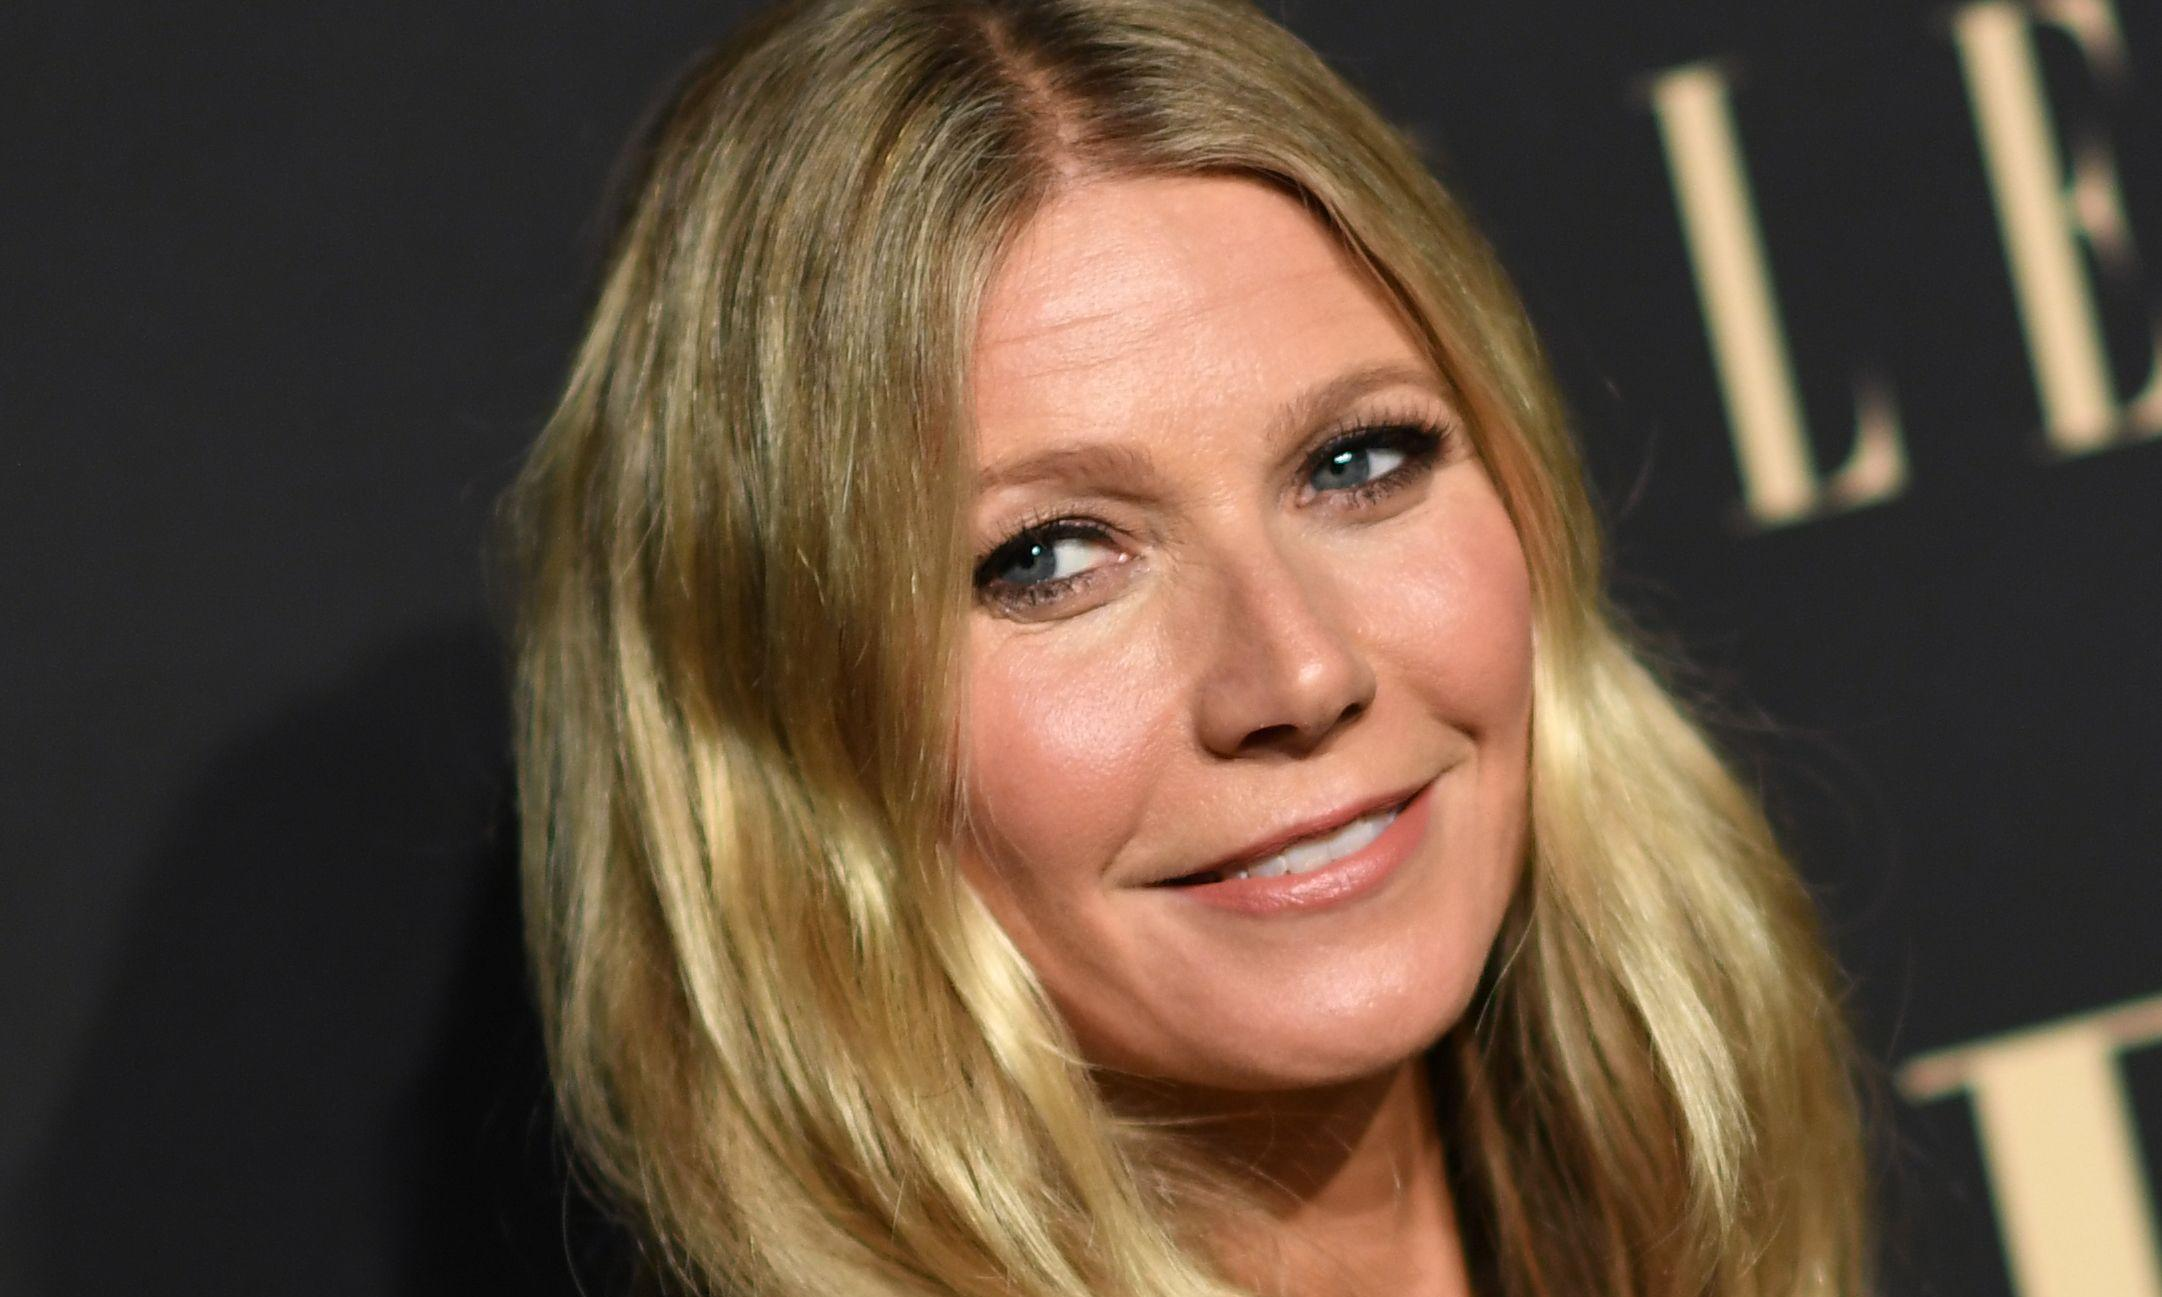 Gwyneth Paltrow suits up for the new high-fashion fad: 'boob armour'